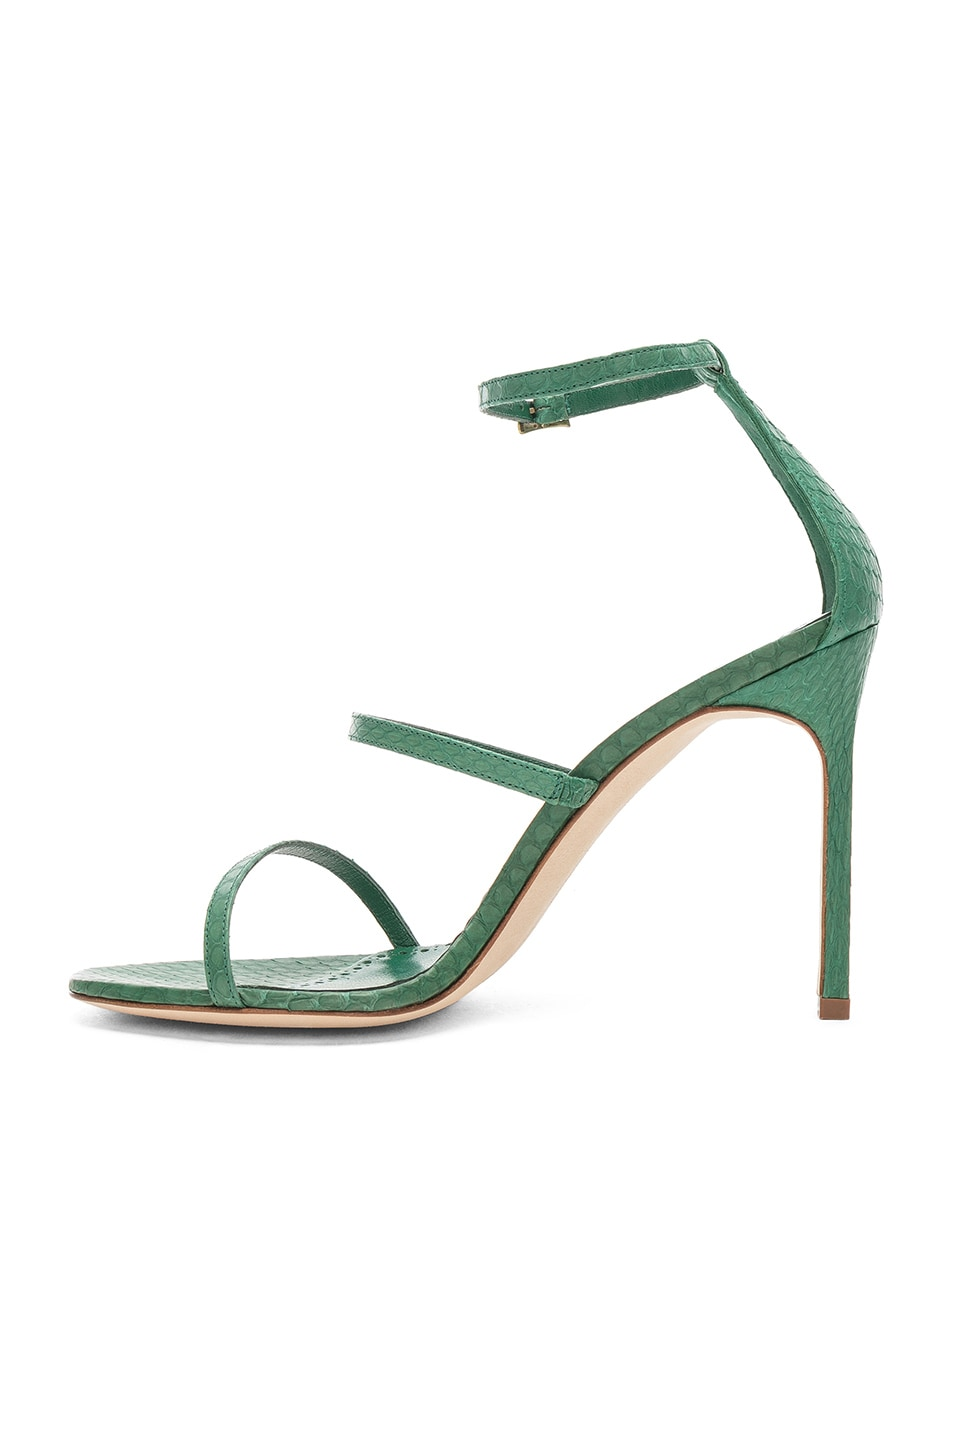 Image 5 of Manolo Blahnik Piona Matte Snake 105 Heel in Green